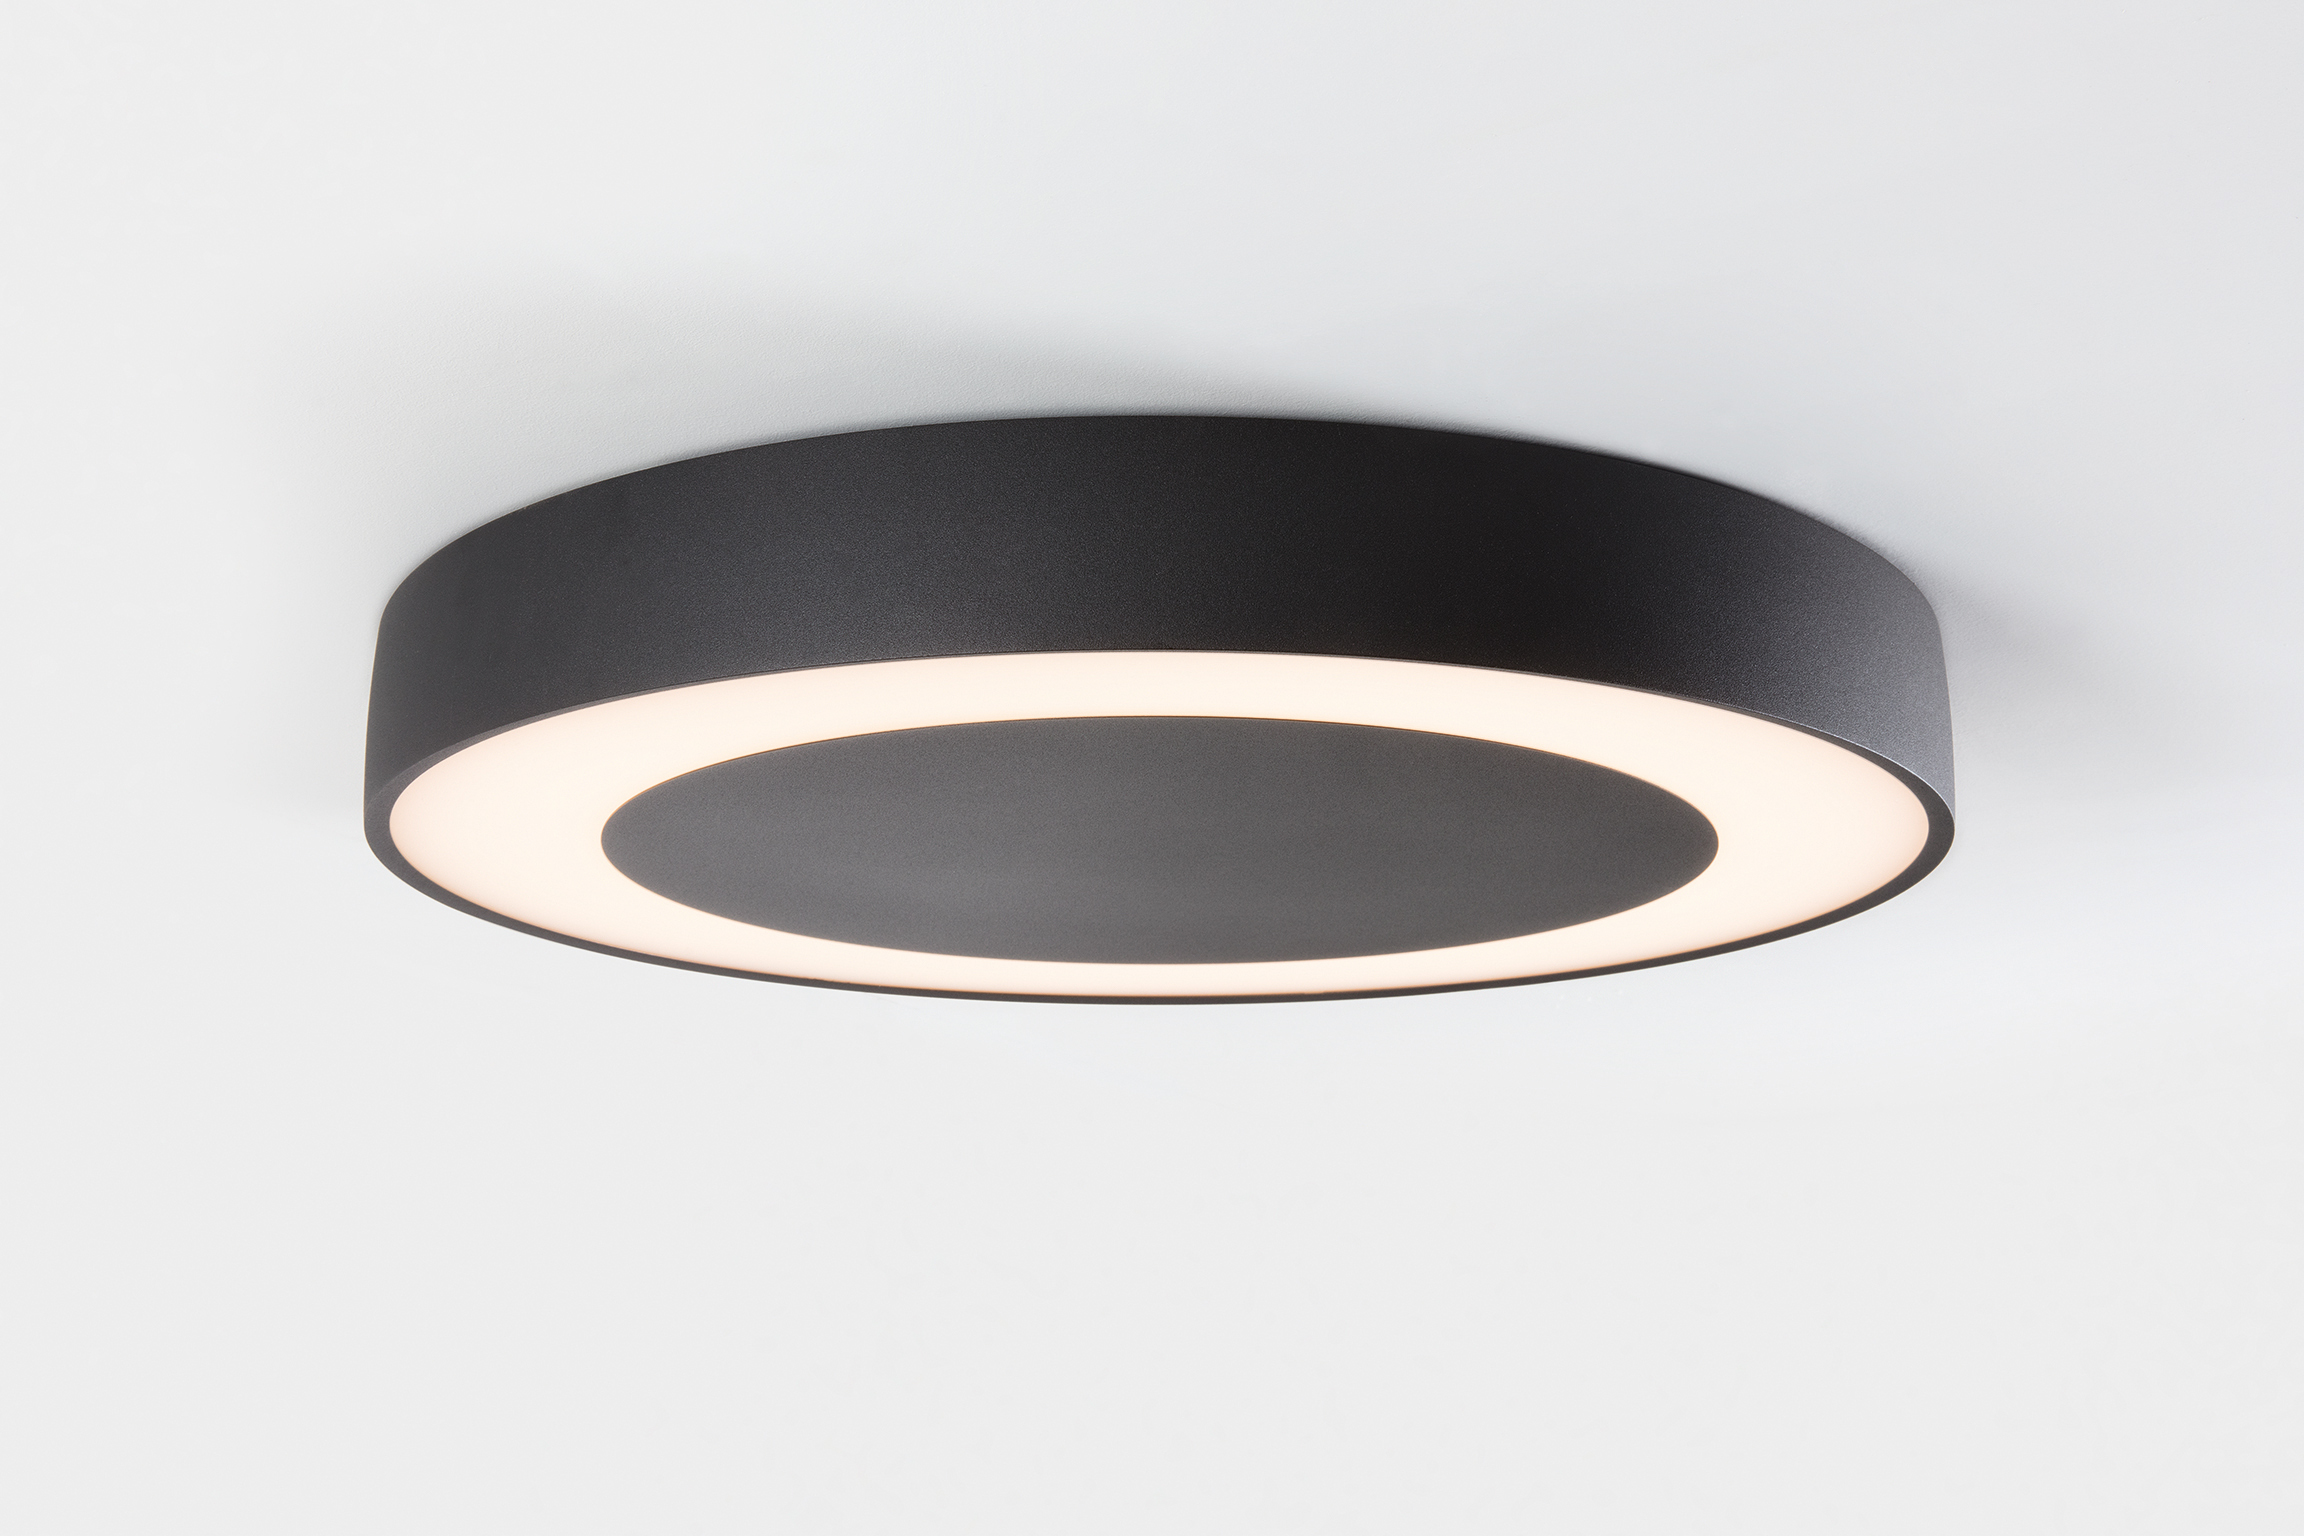 Flat moon eclips ceiling by modular lighting instruments stylepark flat moon eclips ceiling flat moon eclips ceiling aloadofball